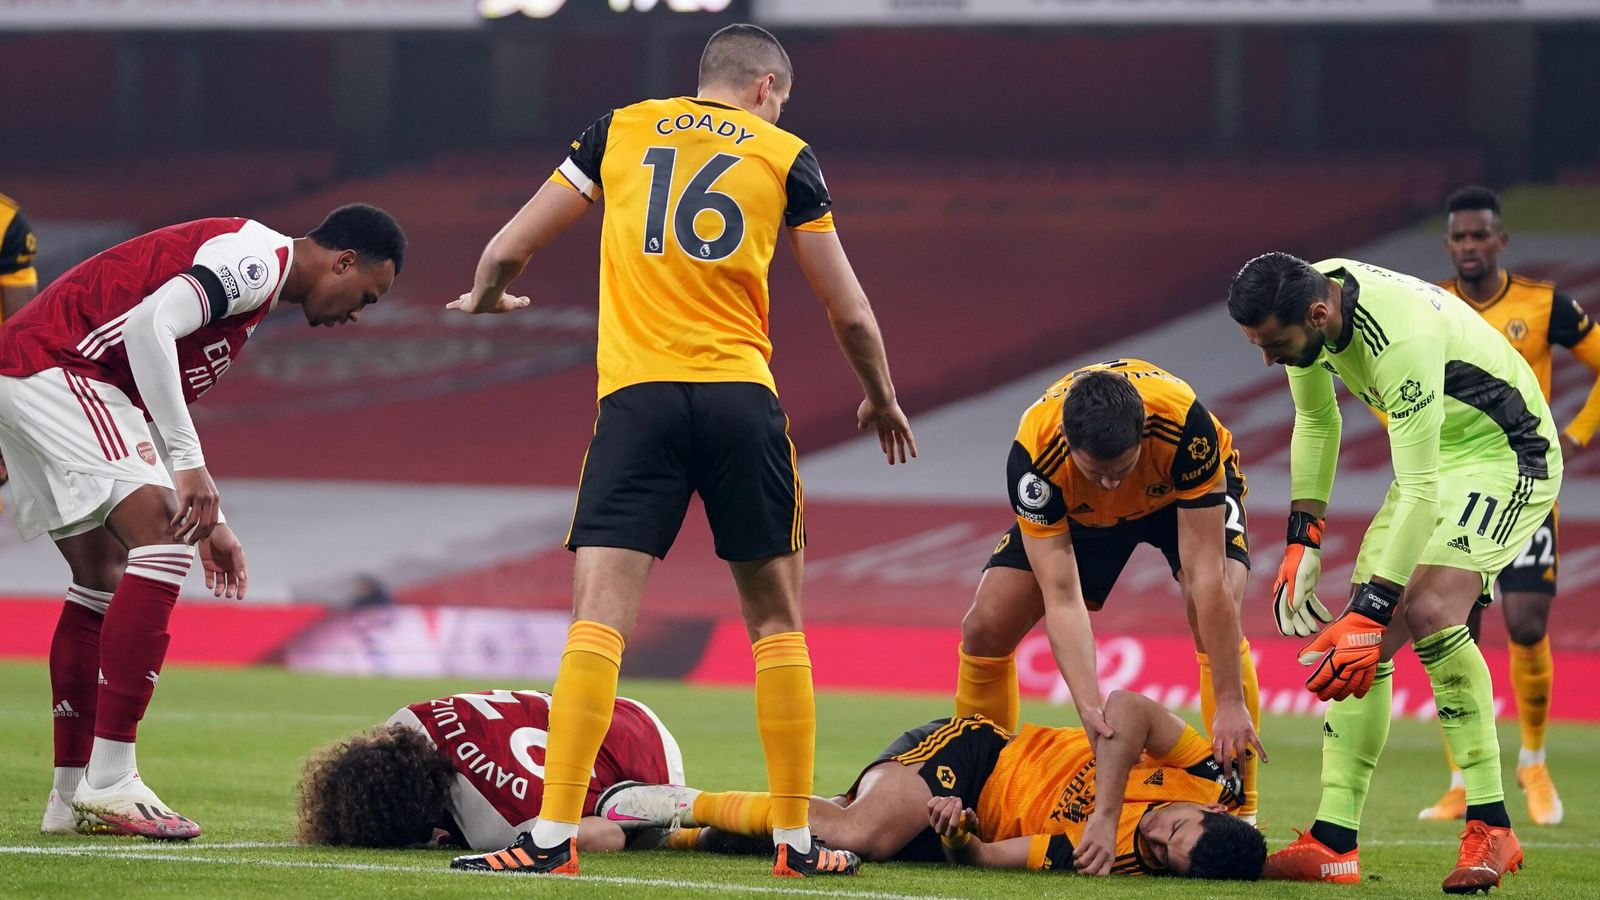 Raul Jimenez Injury Update: Wolves Confirm He Suffered a Fractured Skull